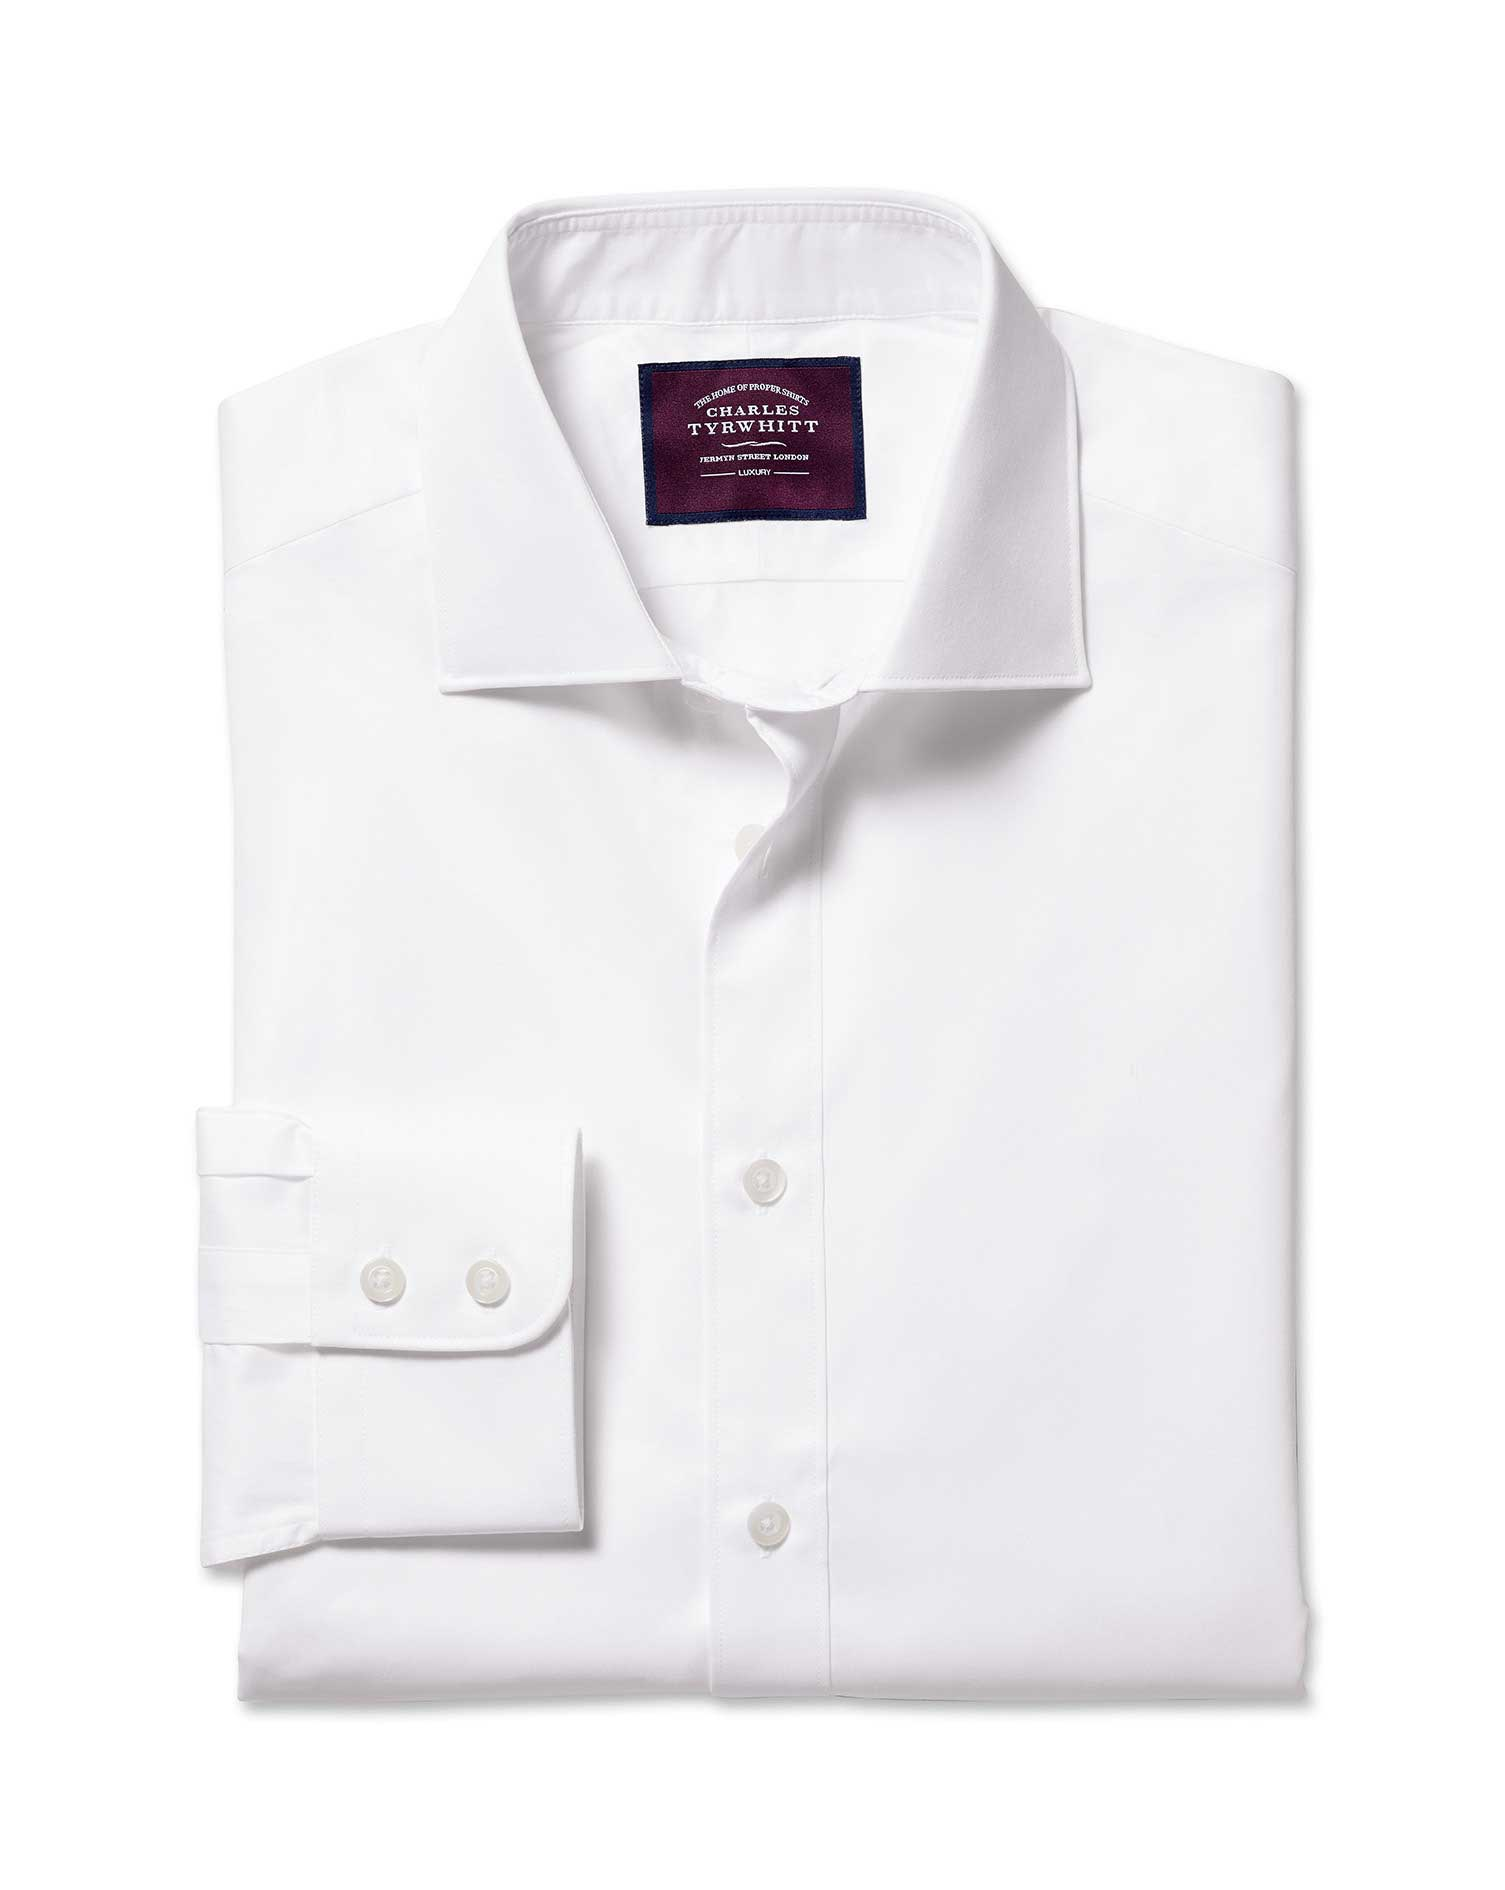 Slim Fit Semi-Cutaway Luxury Twill White Egyptian Cotton Formal Shirt Double Cuff Size 16.5/34 by Ch